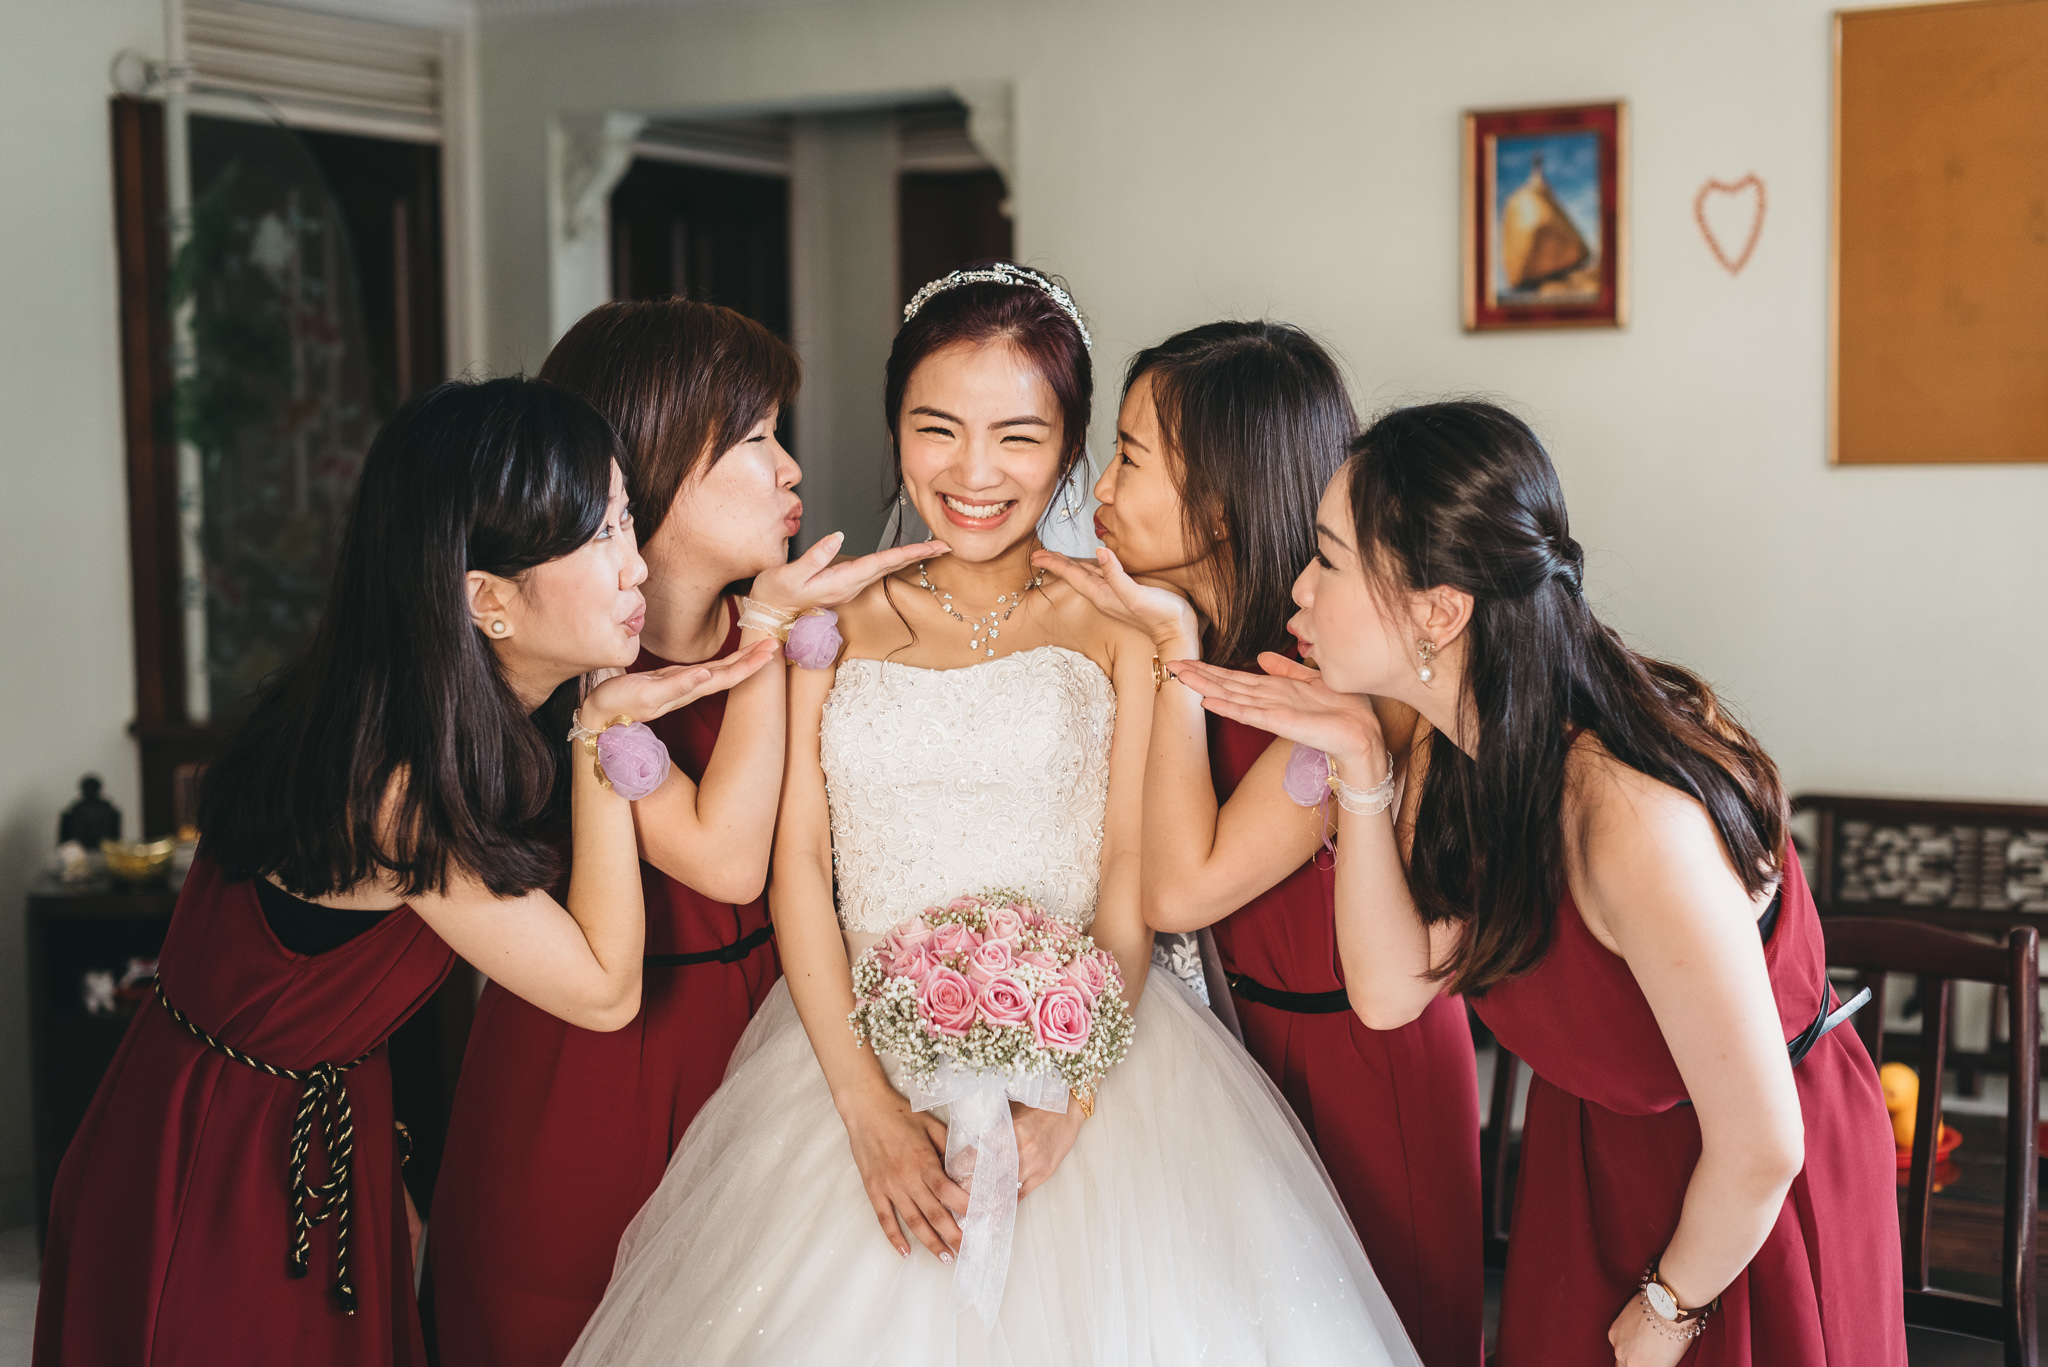 Fiona & Terence Wedding Day Highlights (resized for sharing) - 142.jpg